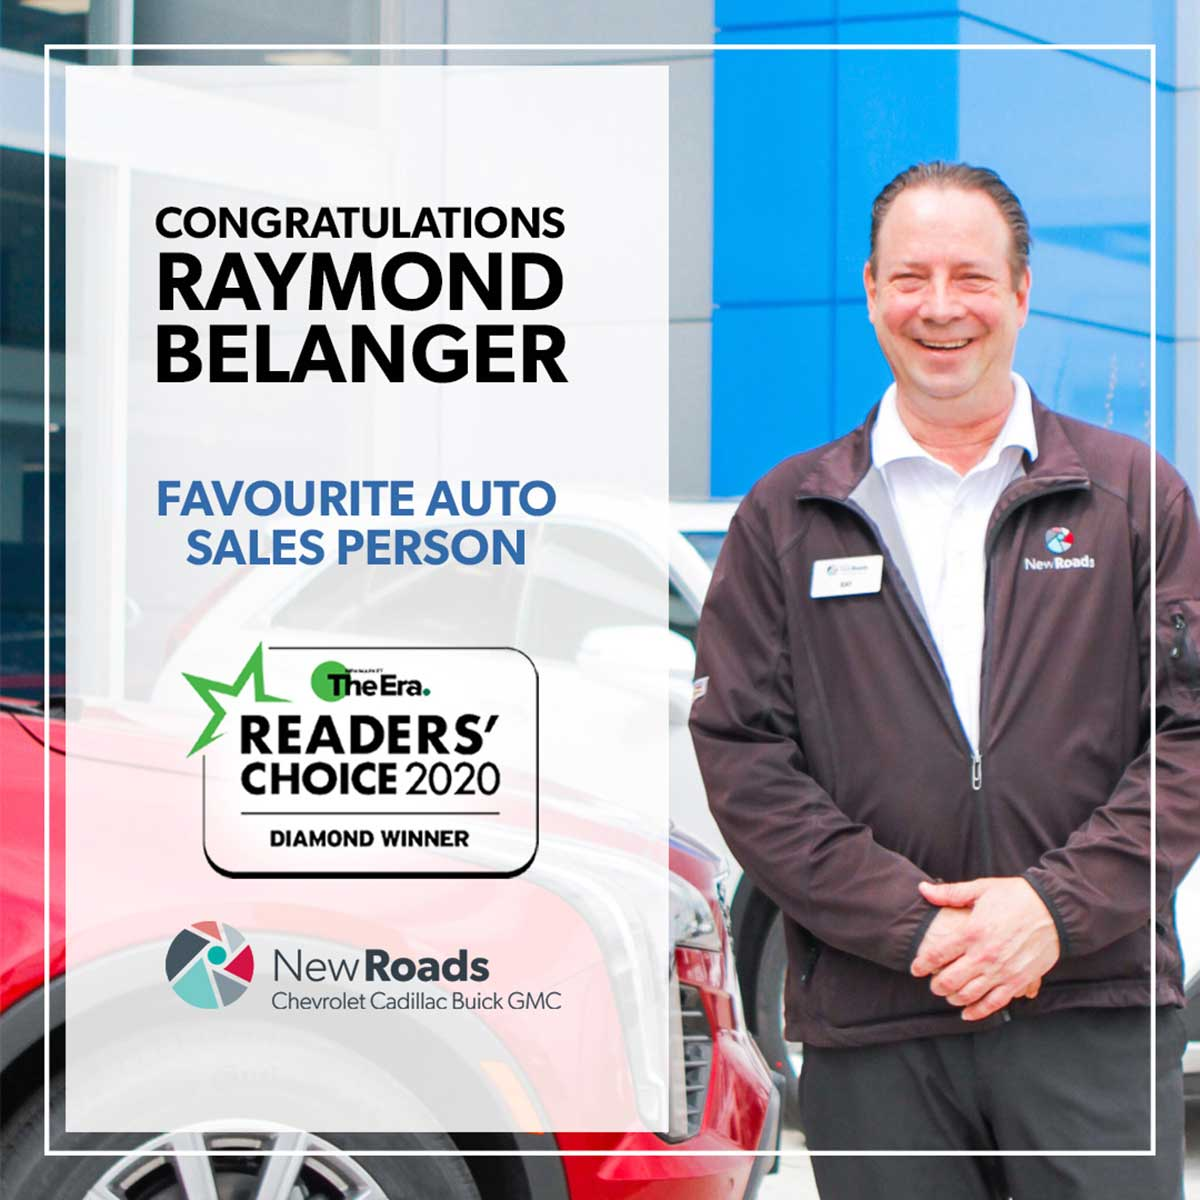 Readers' Choice Best Car Sales Person